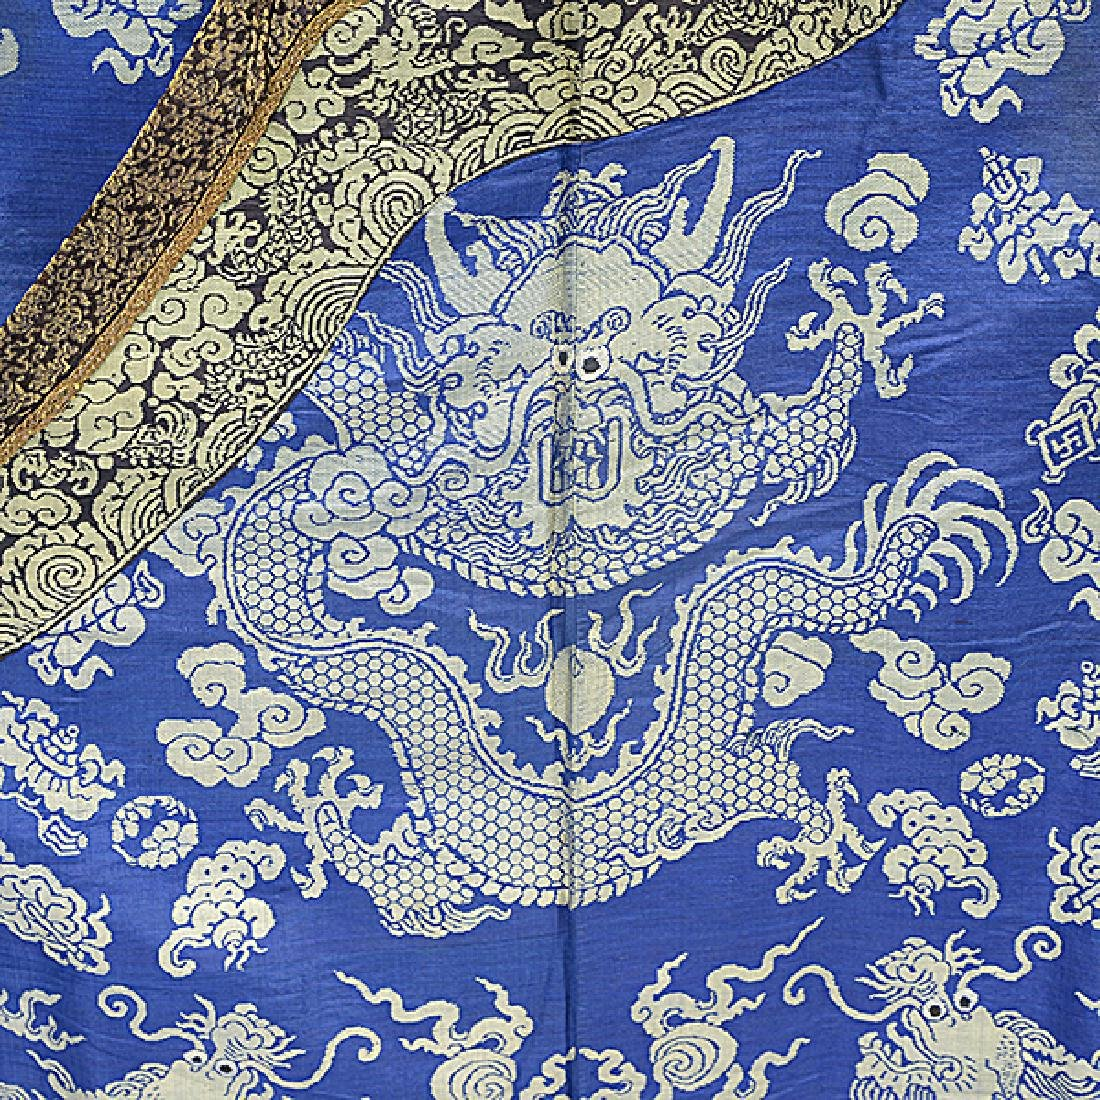 A Brocade Woven Blue Ground 'Dragon' Robe, Late 19th - 3